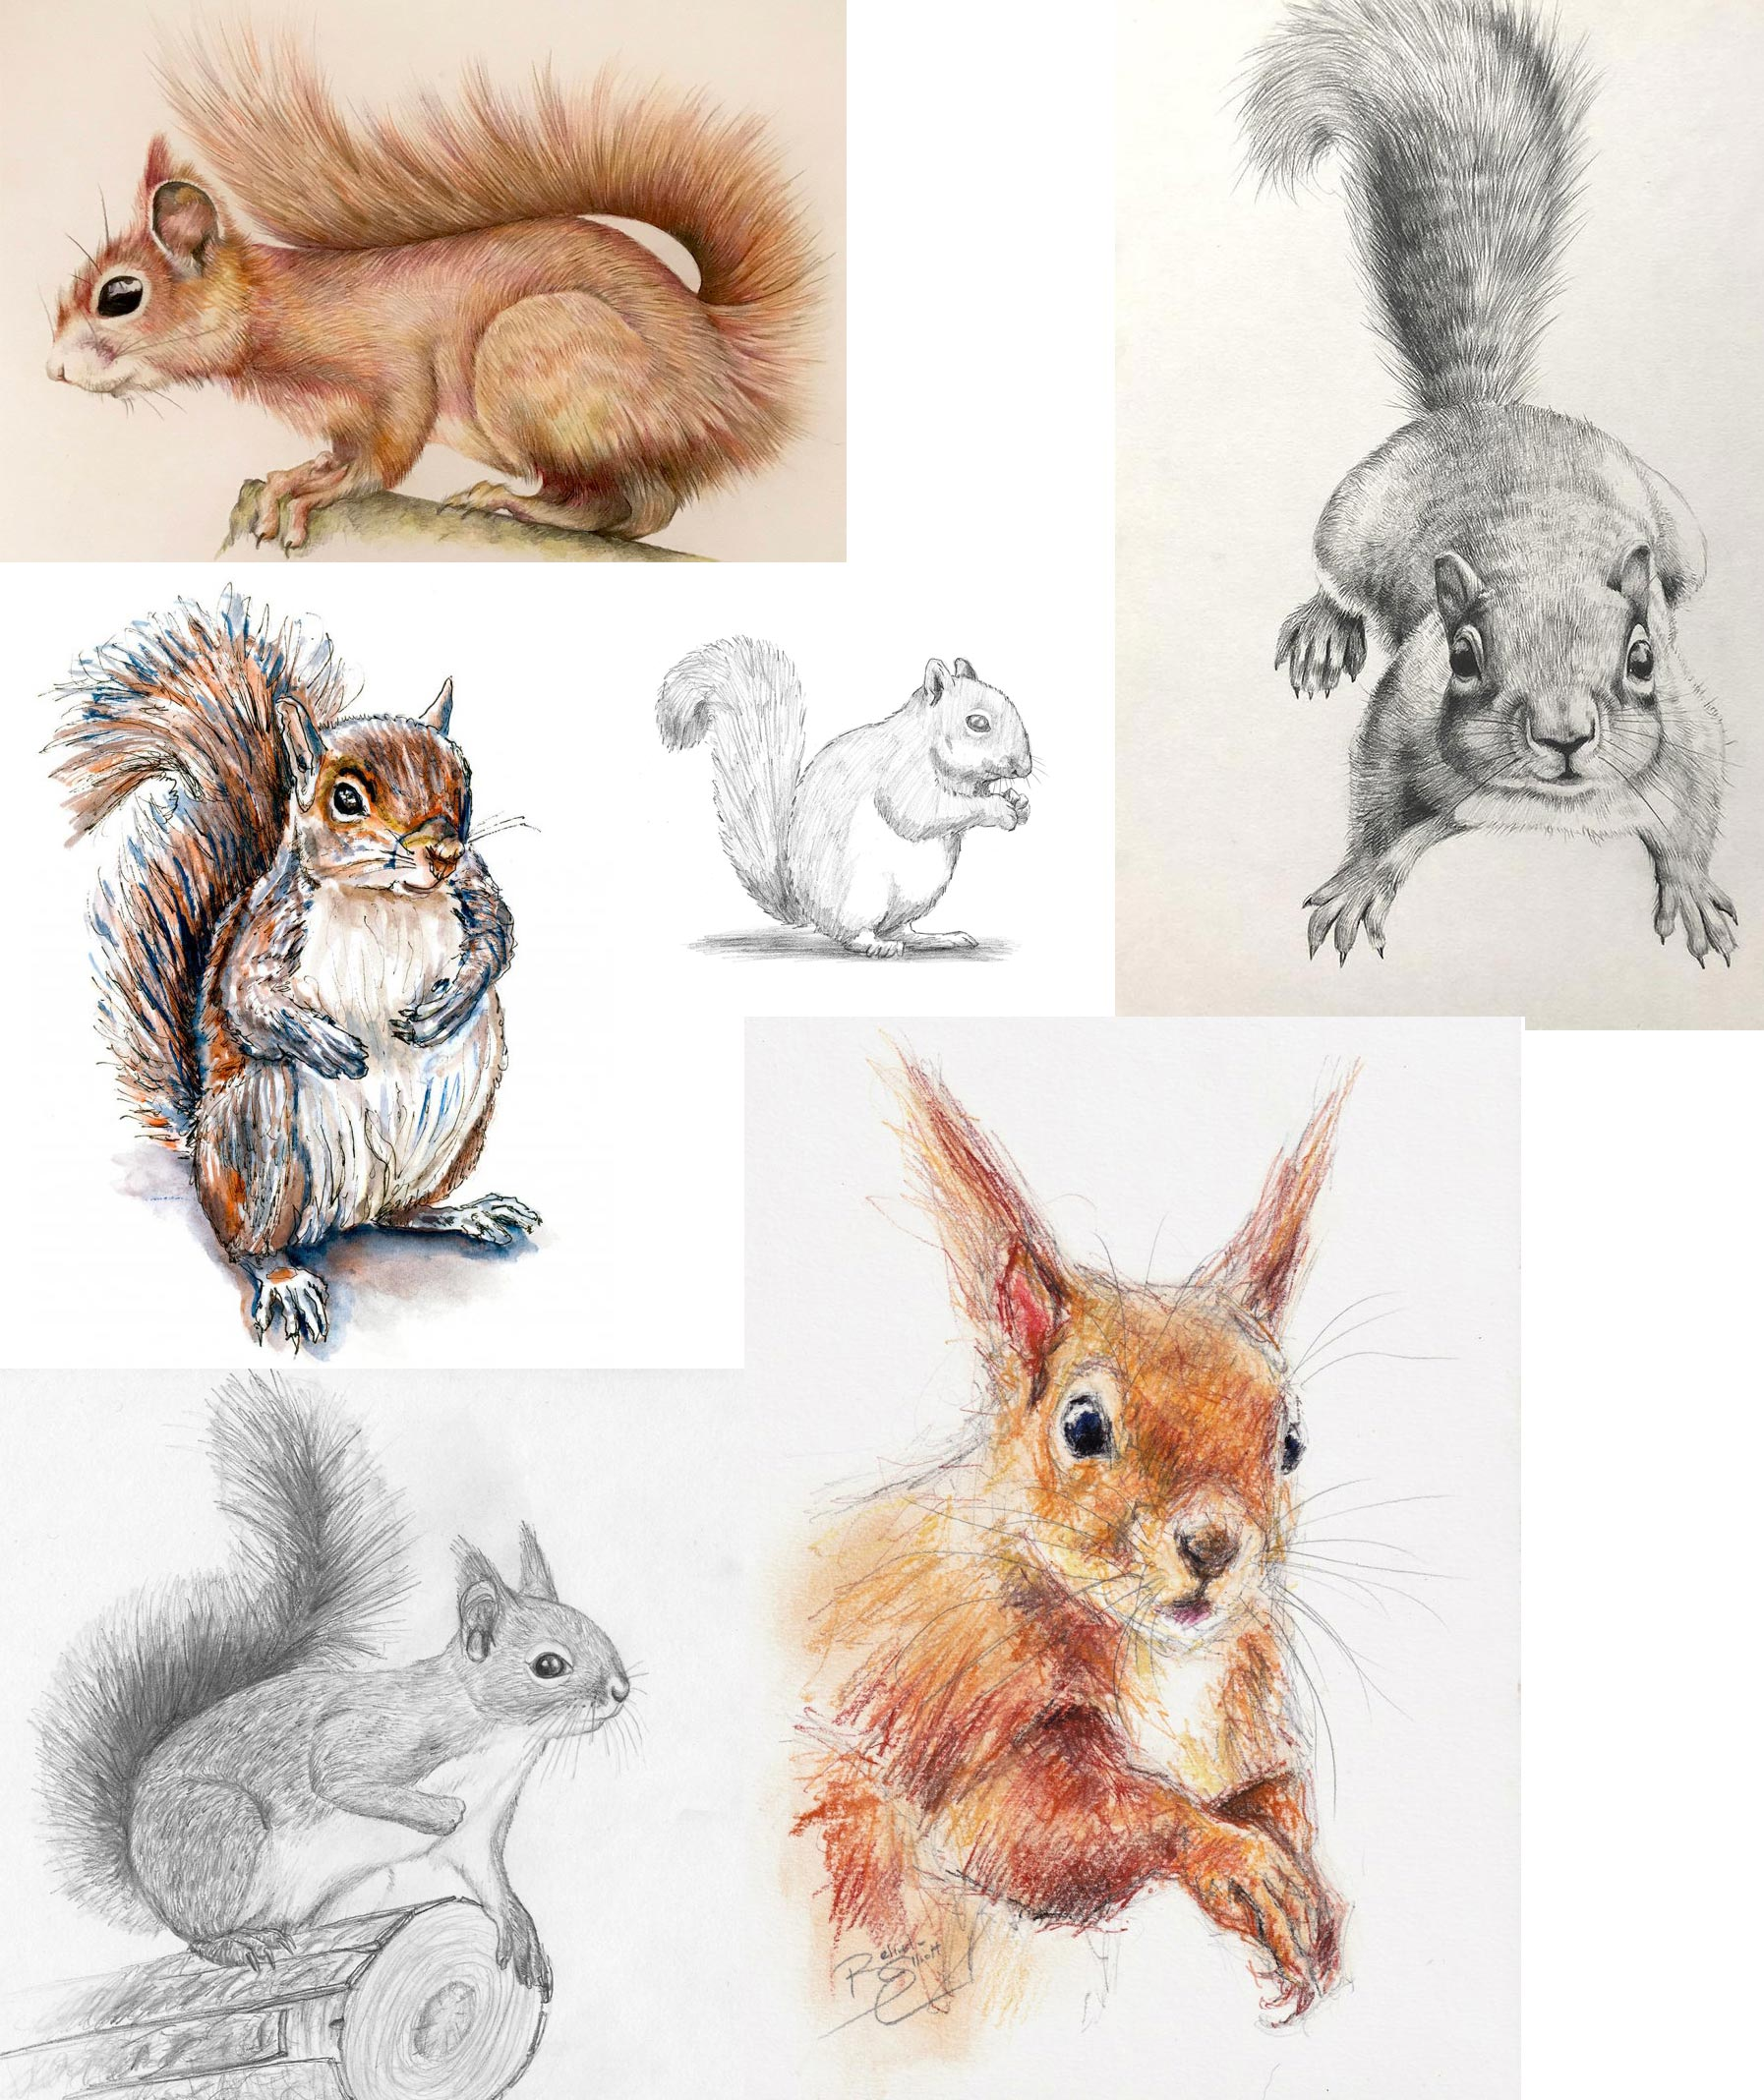 Squirrel drawing reference